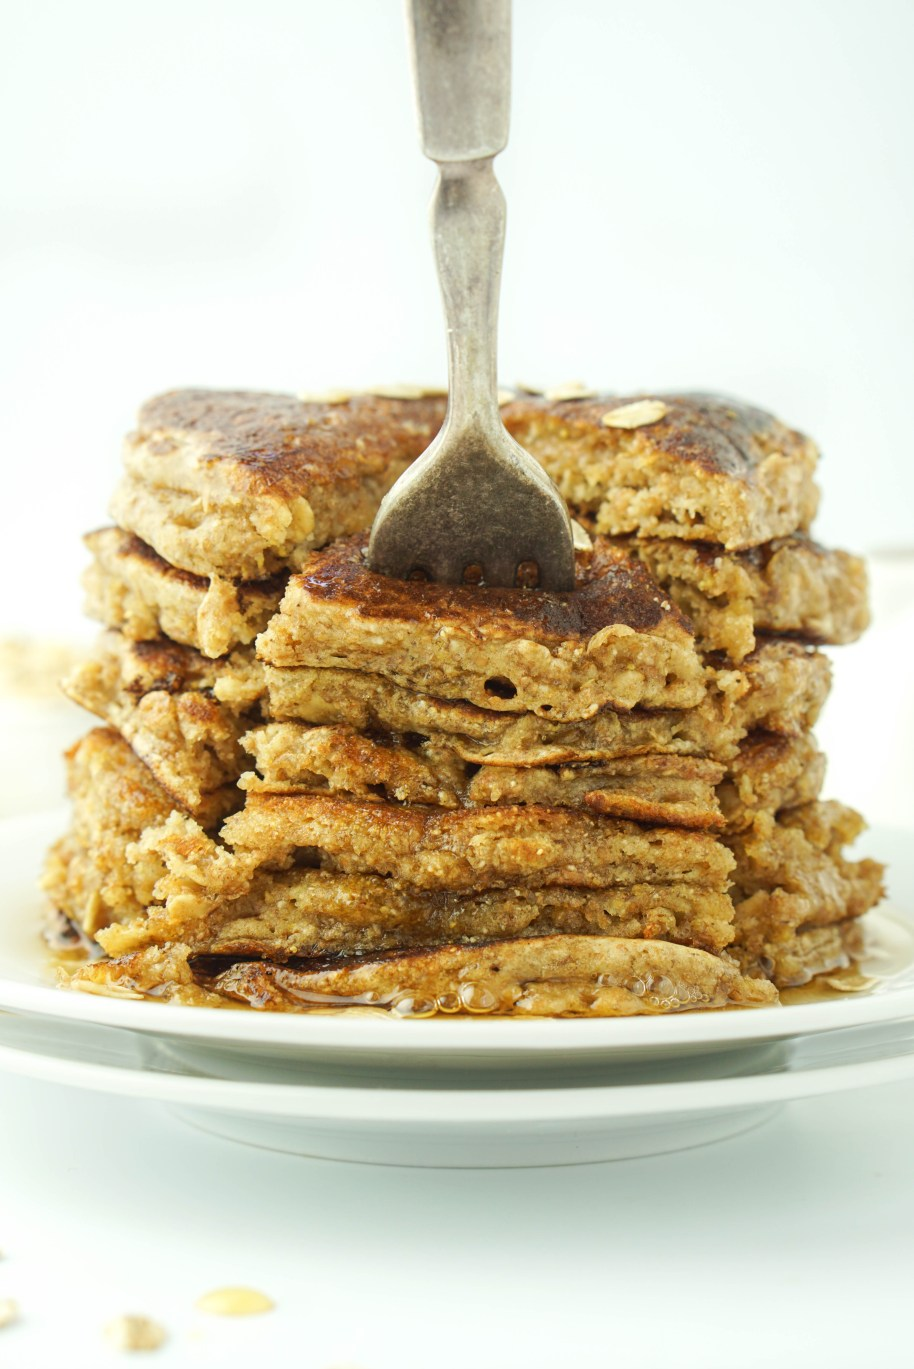 Healthy Oatmeal Pancakes! Sugar-free, low-fat and whole grain! #healthy #pancakes #oatmeal _